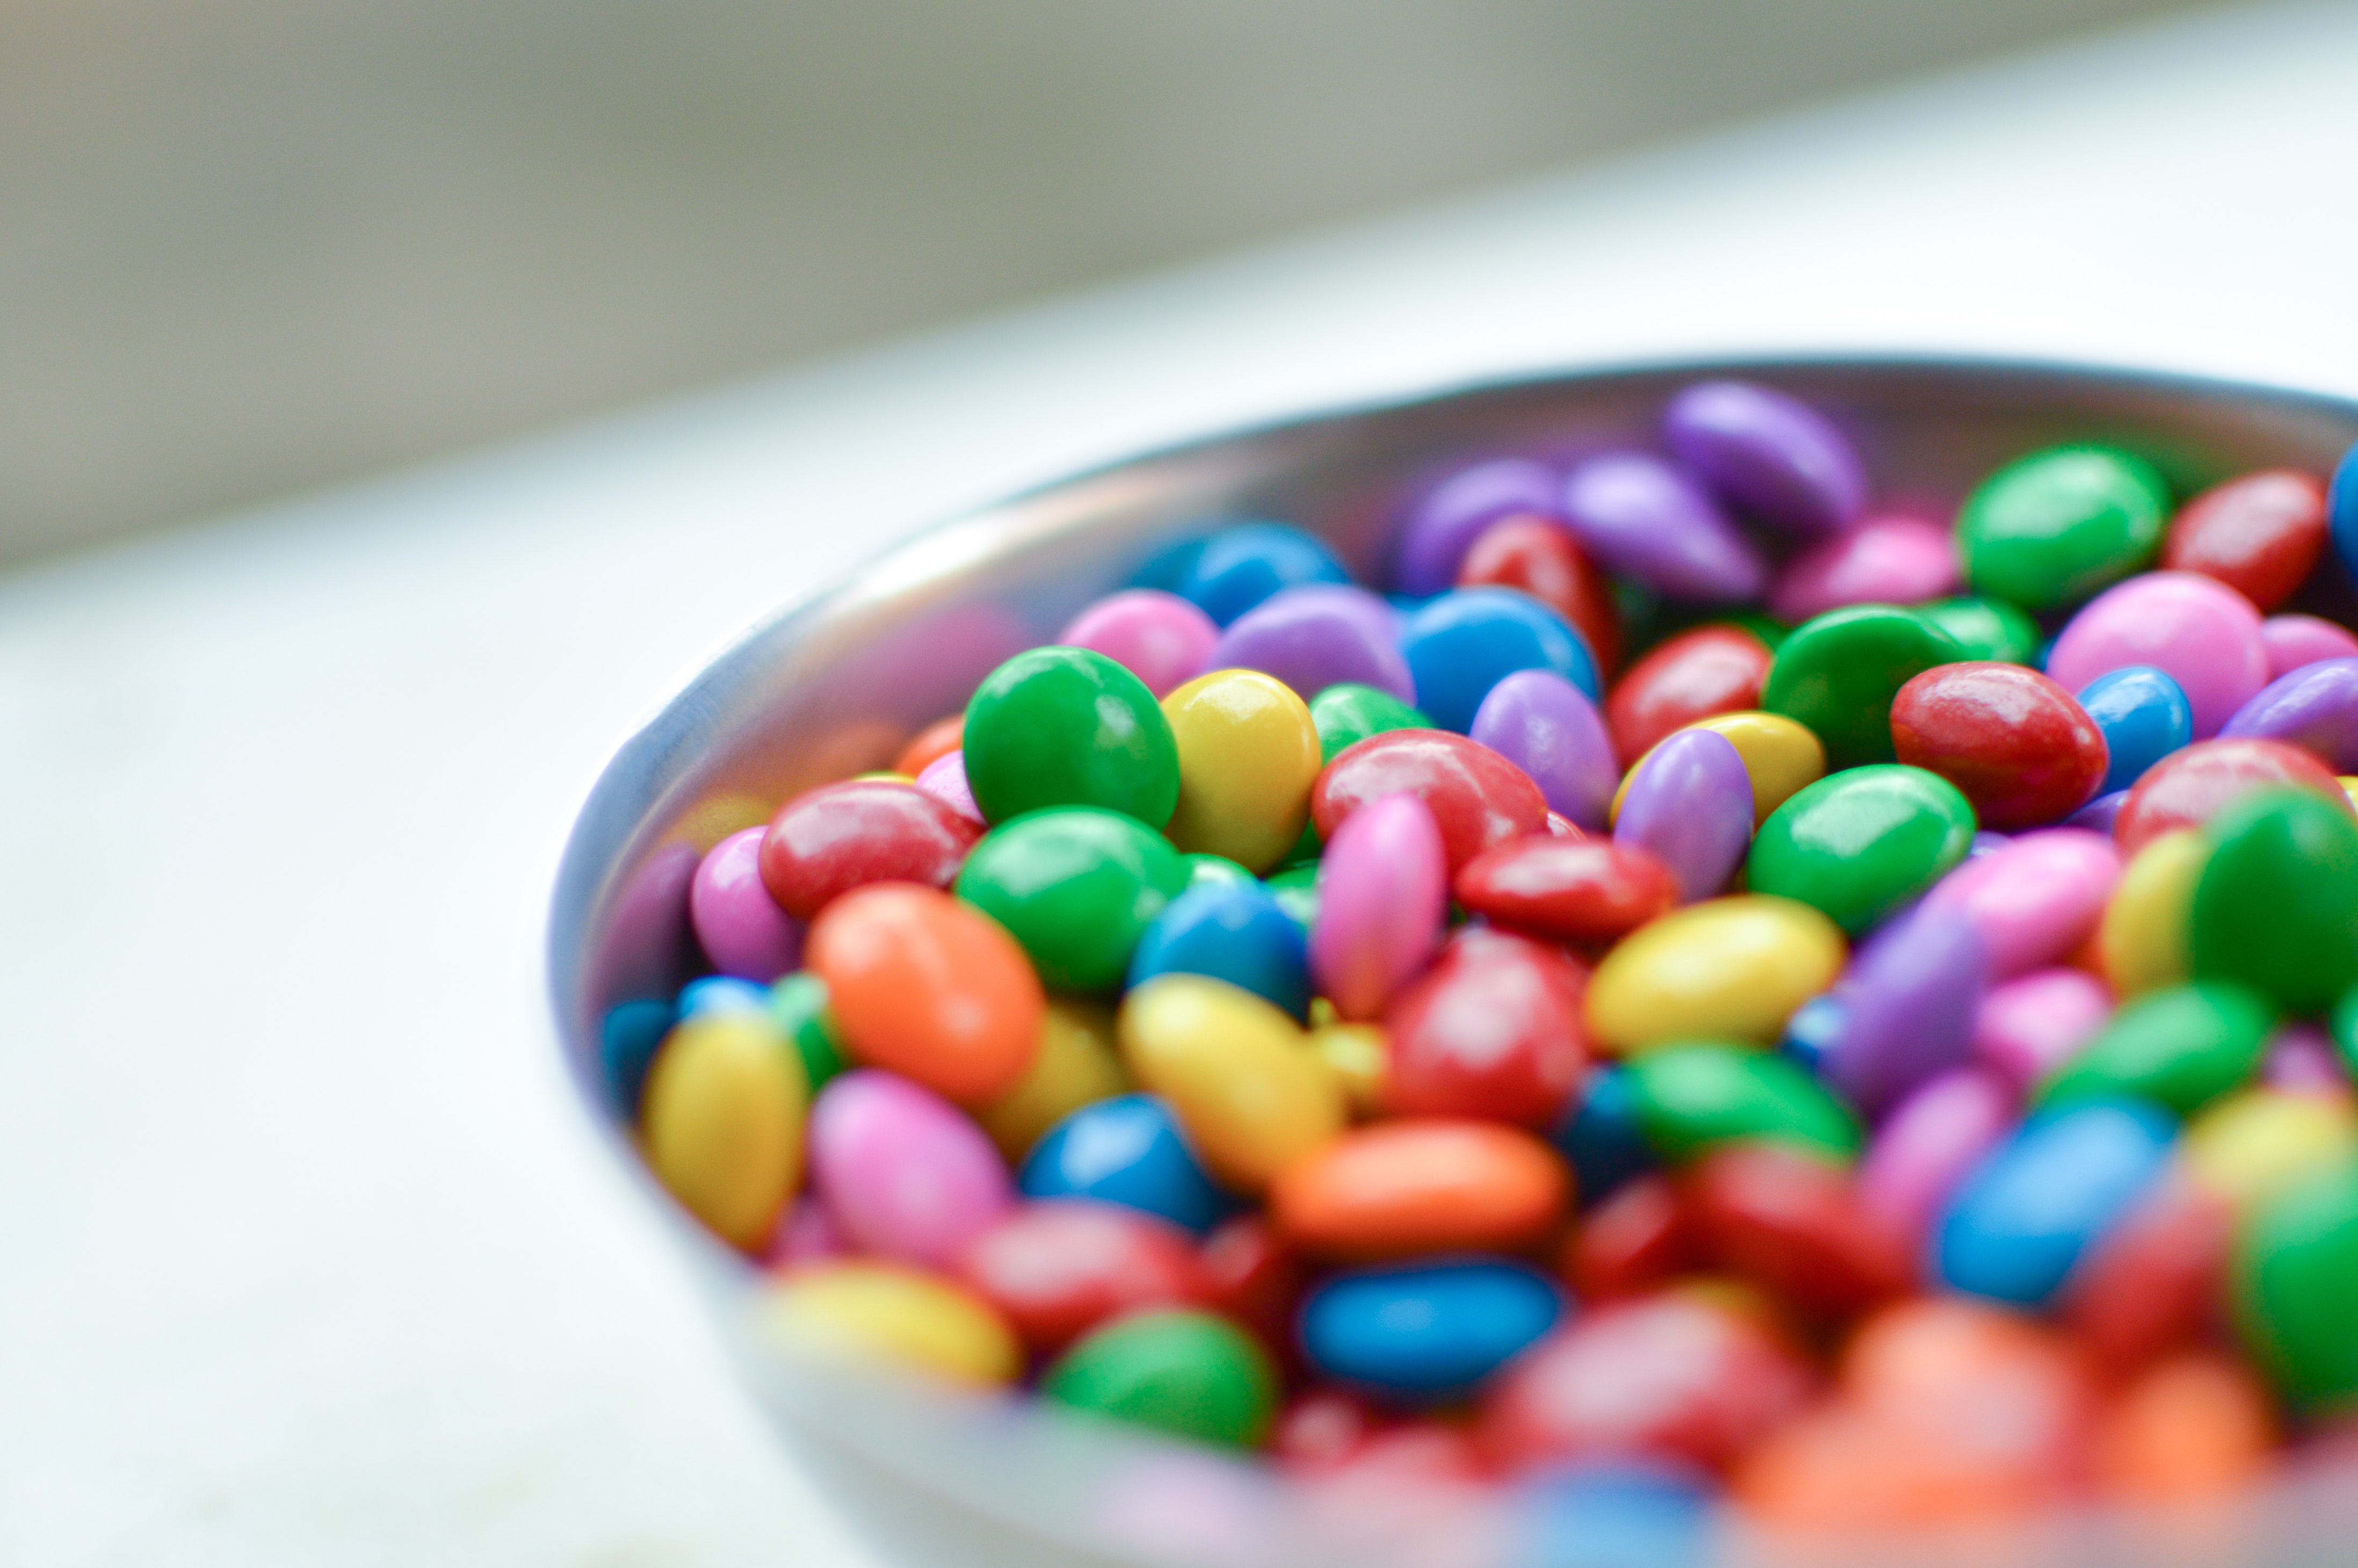 Bowl of colourful smarties